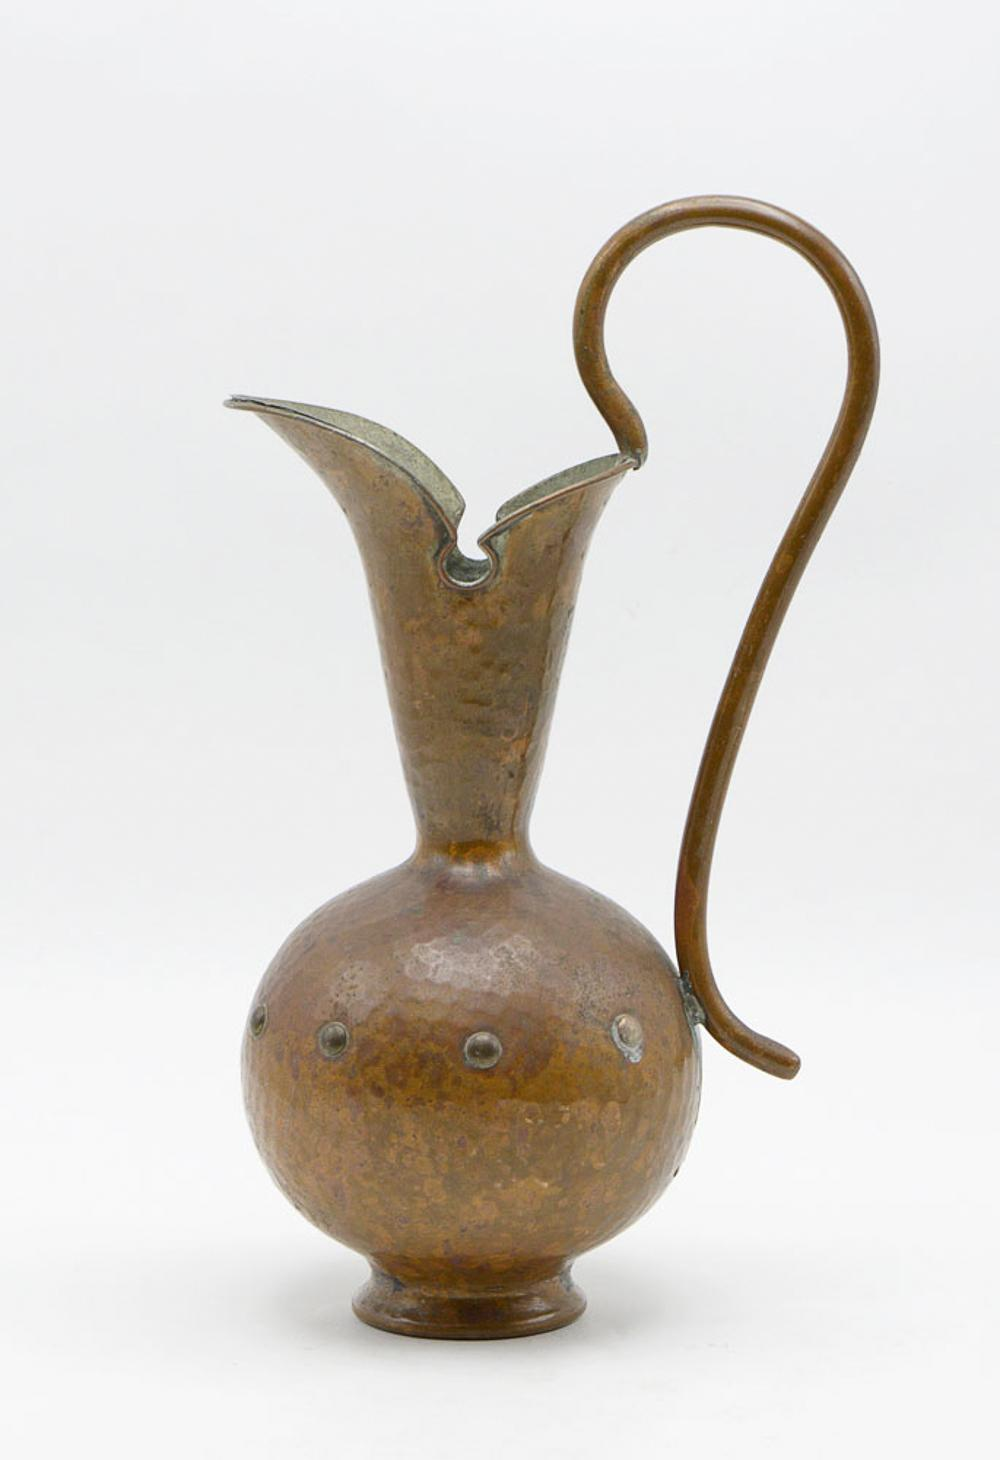 Copper and hammered metal jug